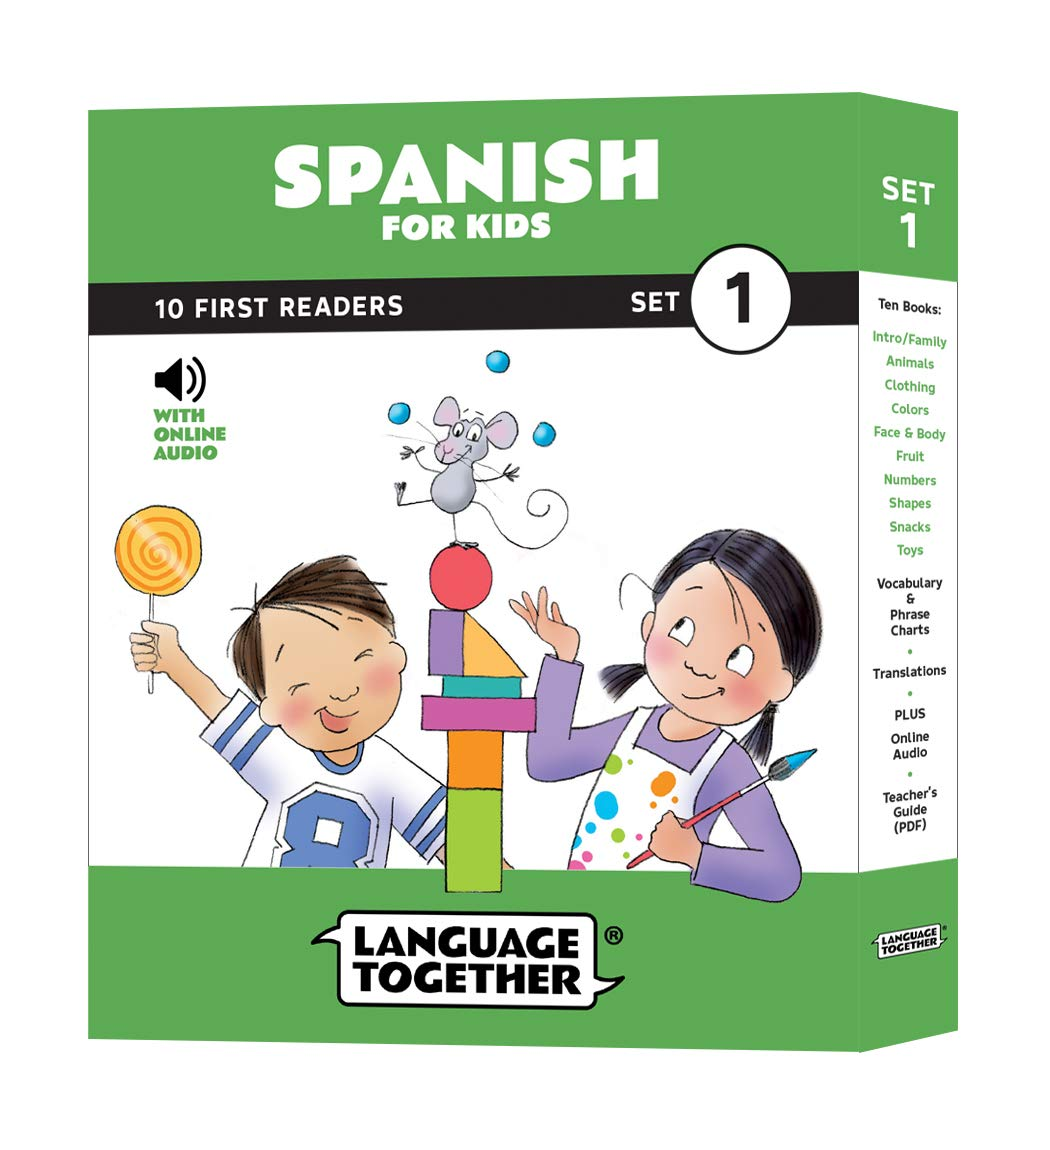 Spanish for Kids: 10 First Reader Books with Online Audio